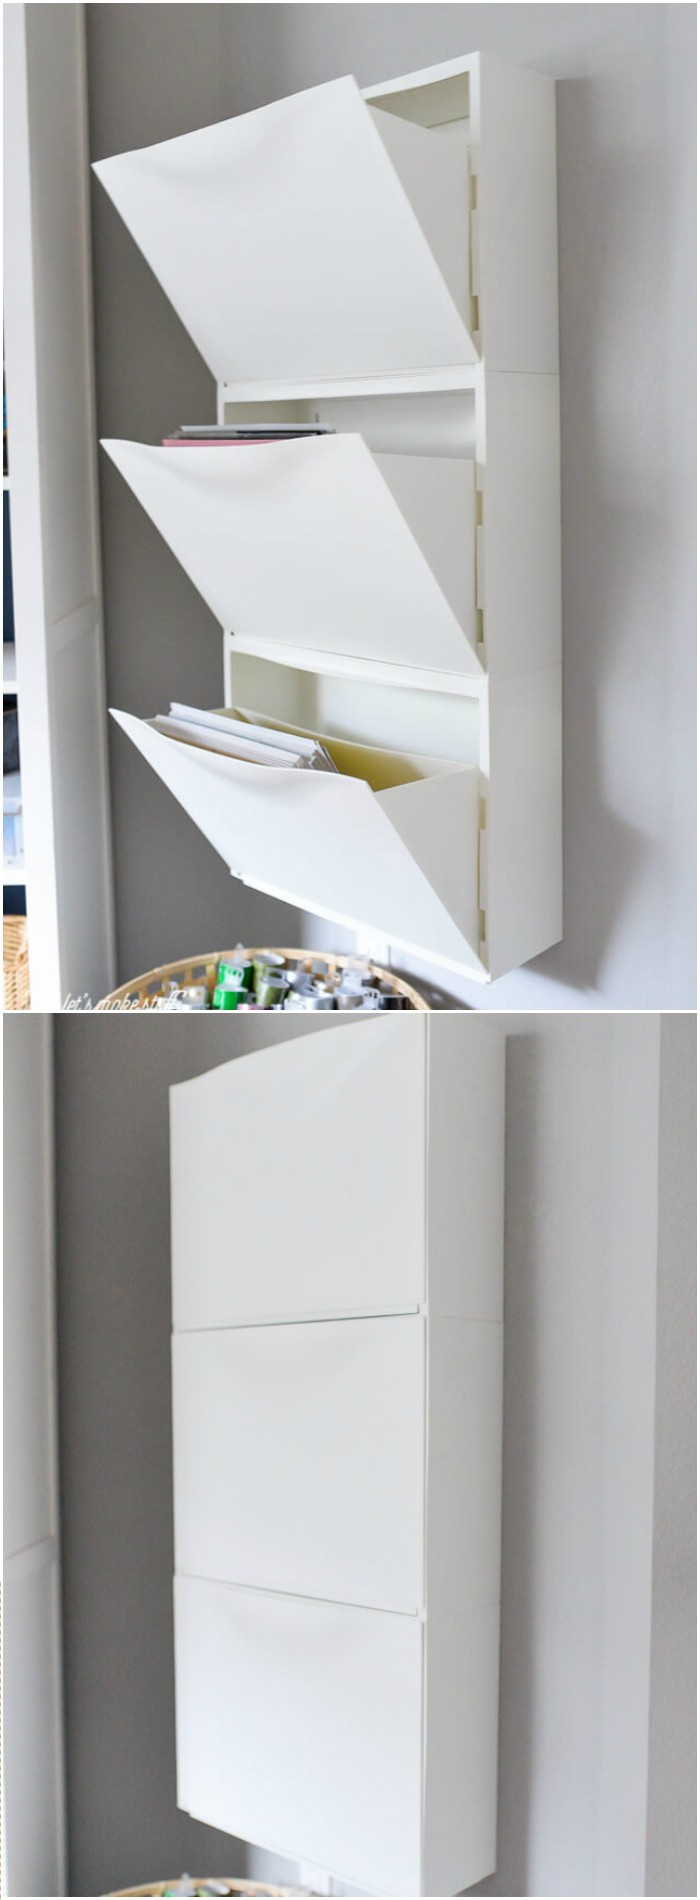 IKEA Hack Shoe Holder For Paper Storage IKEA Hacks For Your Home Decor